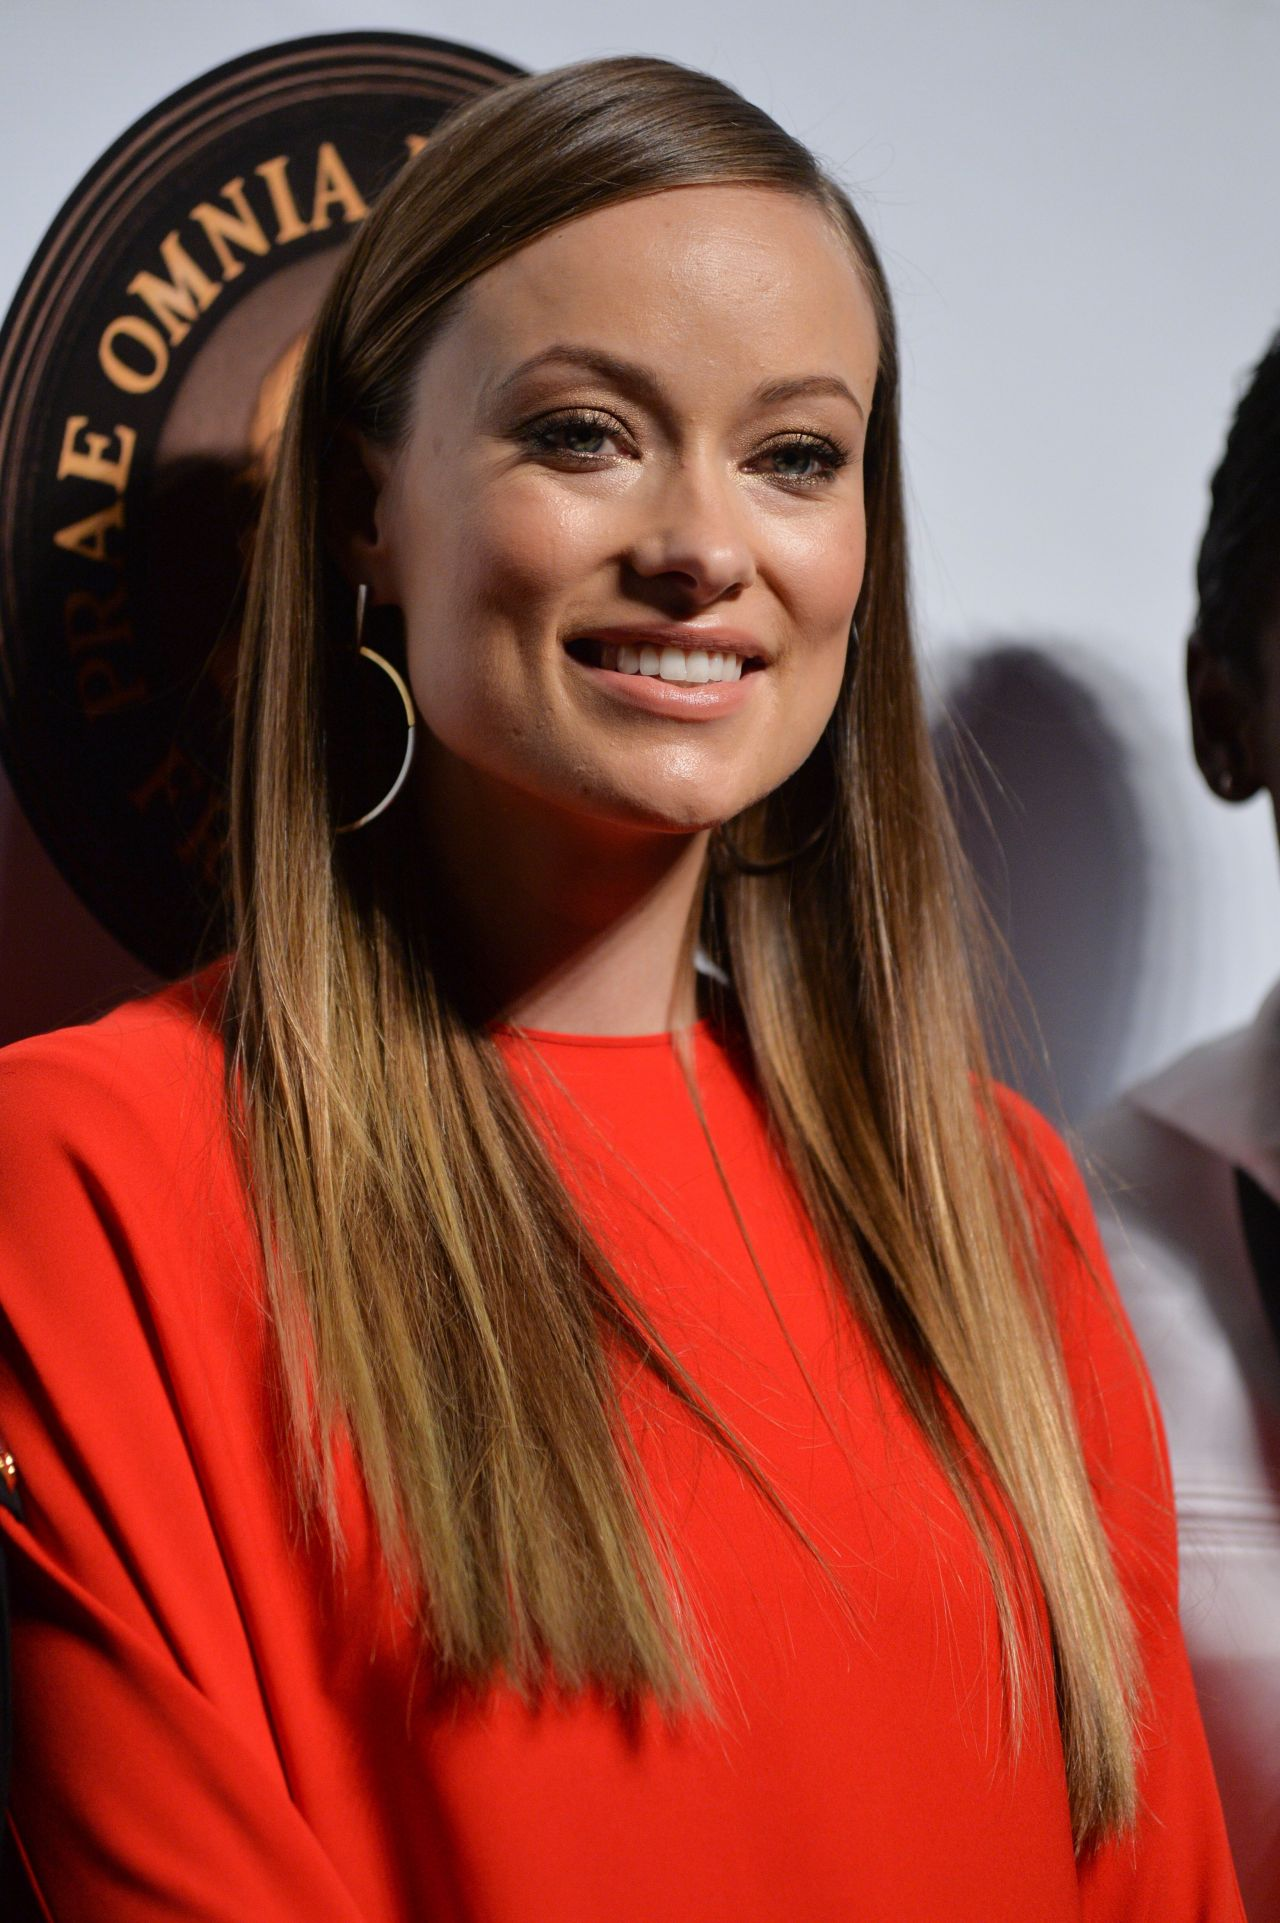 Olivia Wilde Profile And New Pictures 2013: Friars Club Entertainment Icon Award